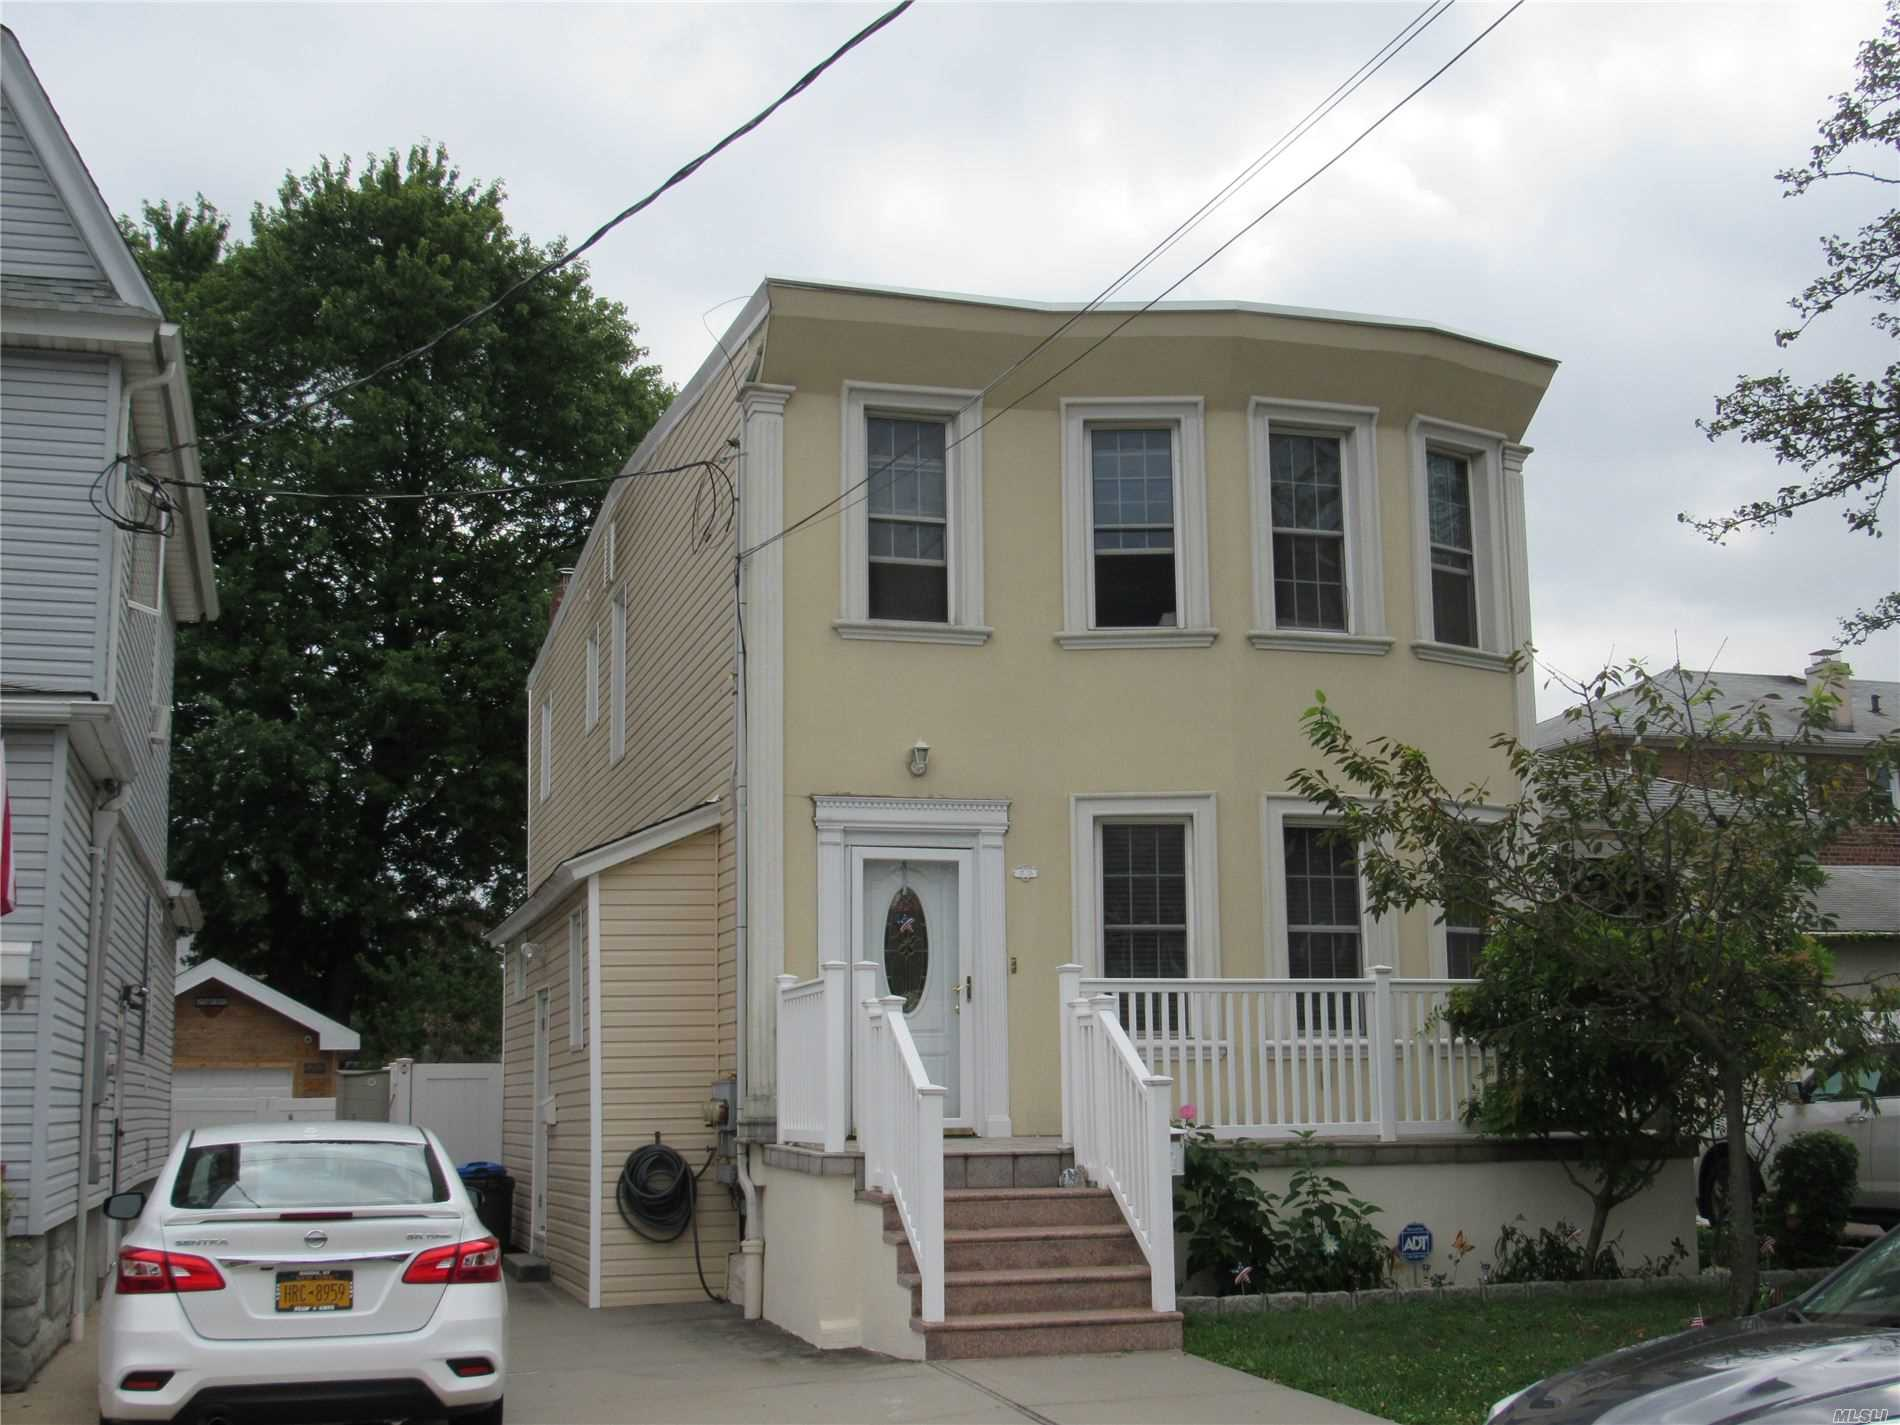 17-35 Murray St, 2nd - Whitestone, New York